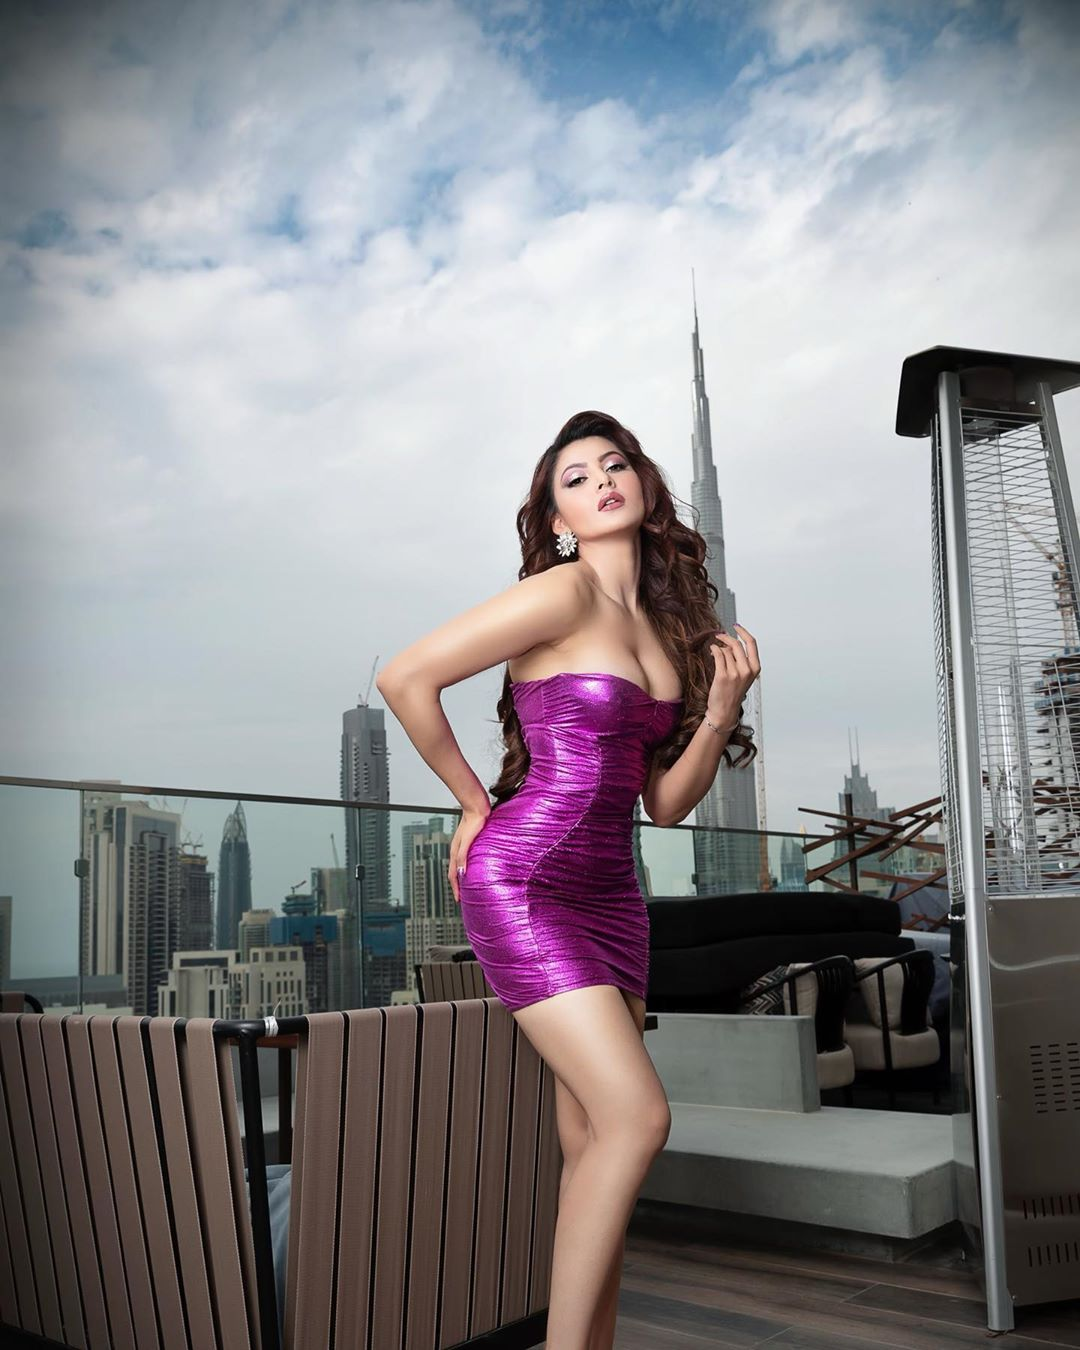 urvashi-rautela-is-famous-for-her-beauty-more-than-her-acting